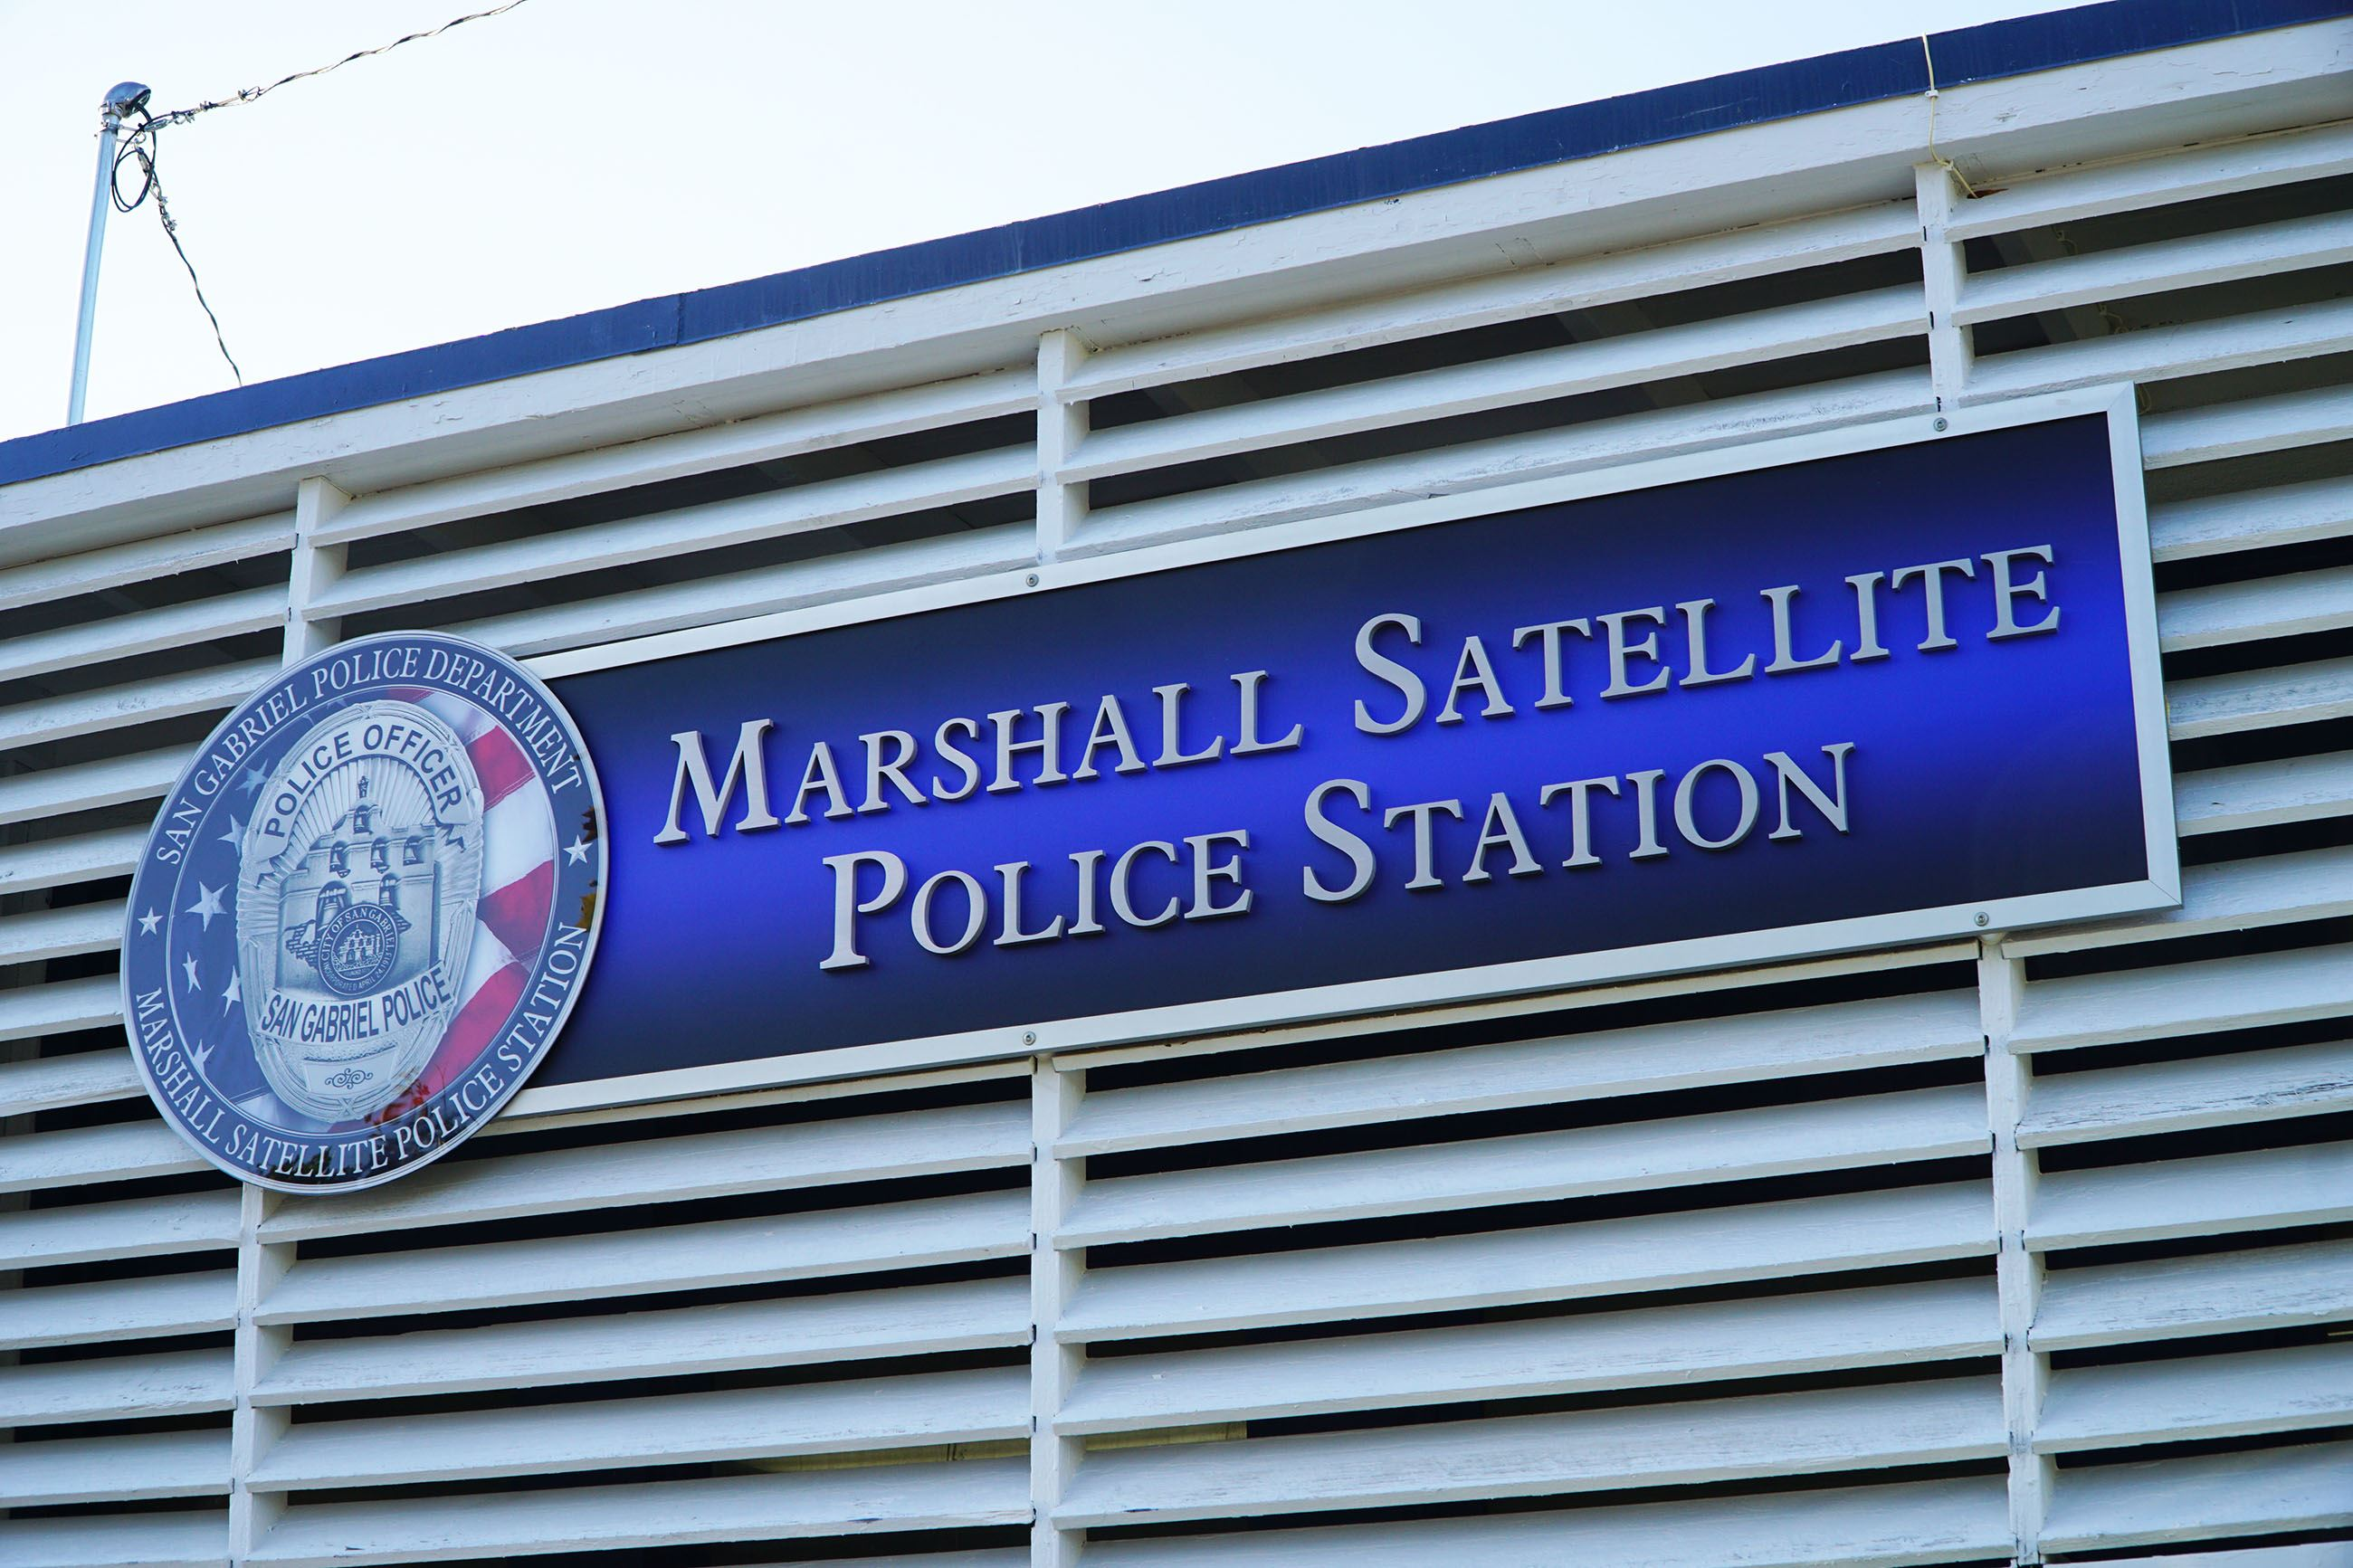 Marshall Police Satellite Station